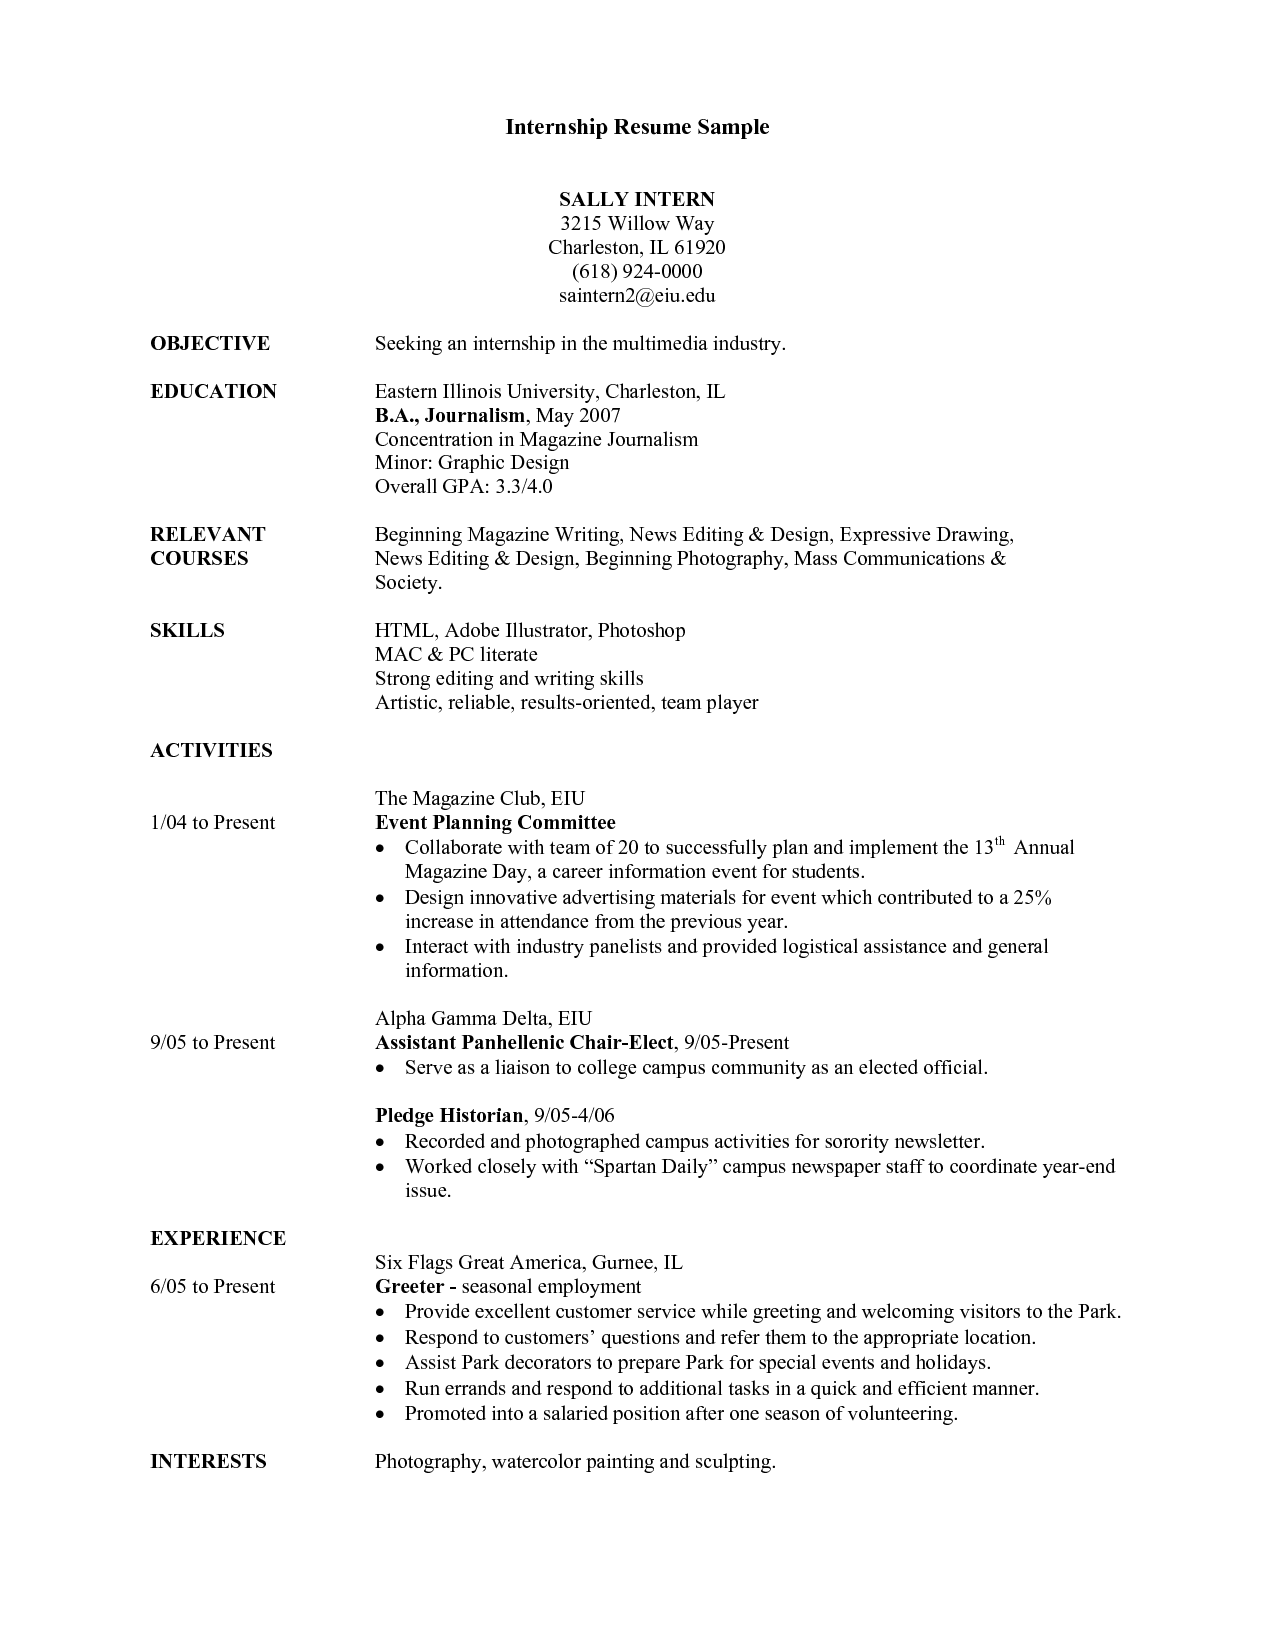 Intern Resume Sample Student Resume Example Sample College Internship Samples Students